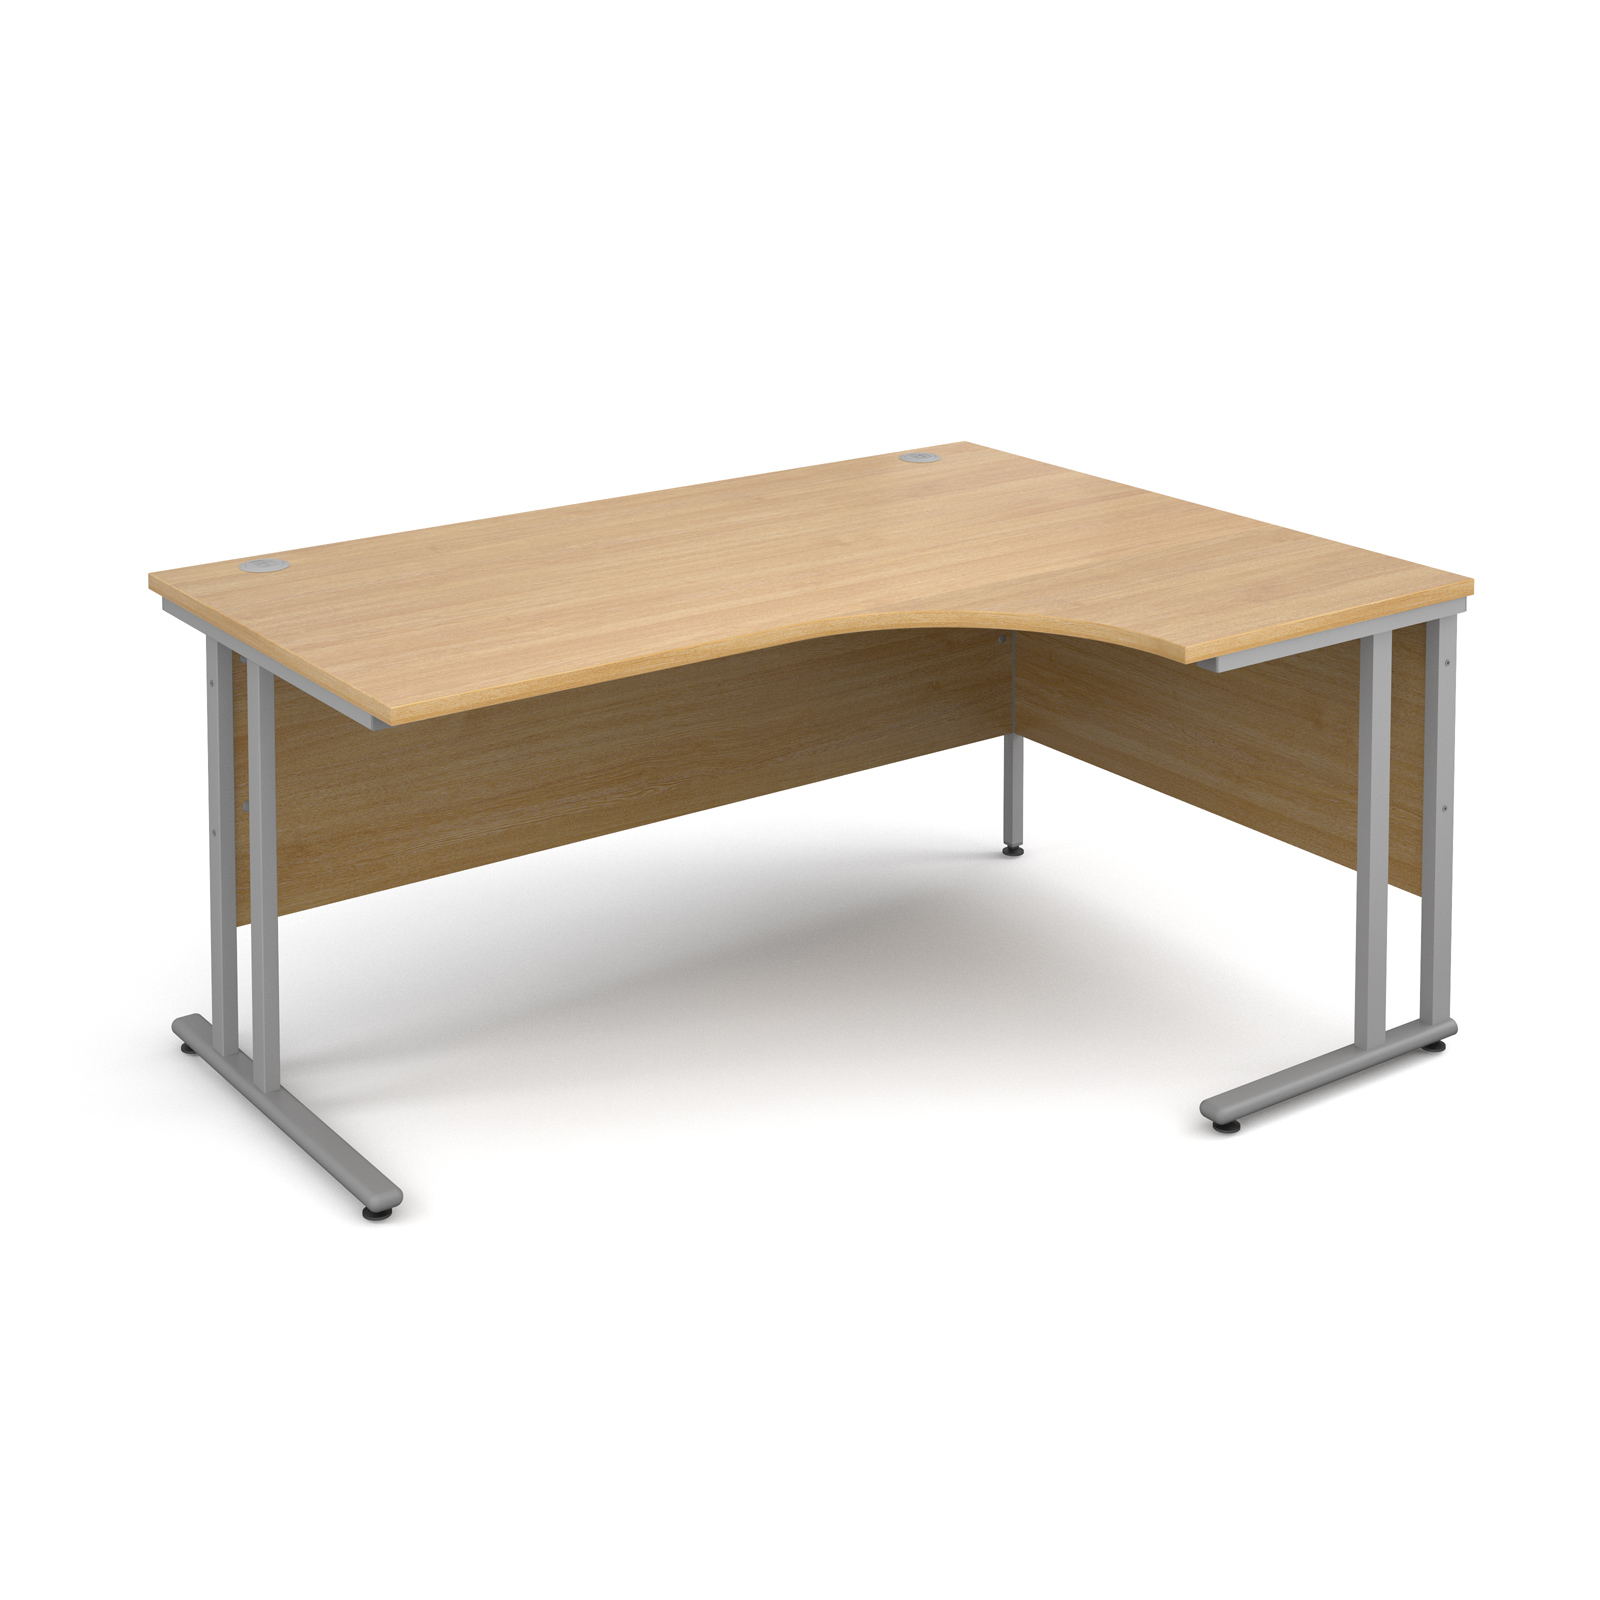 Maestro 25 SL Right Hand Ergonomic Desk 1600mm Silver Cantilever Frame Oak Top